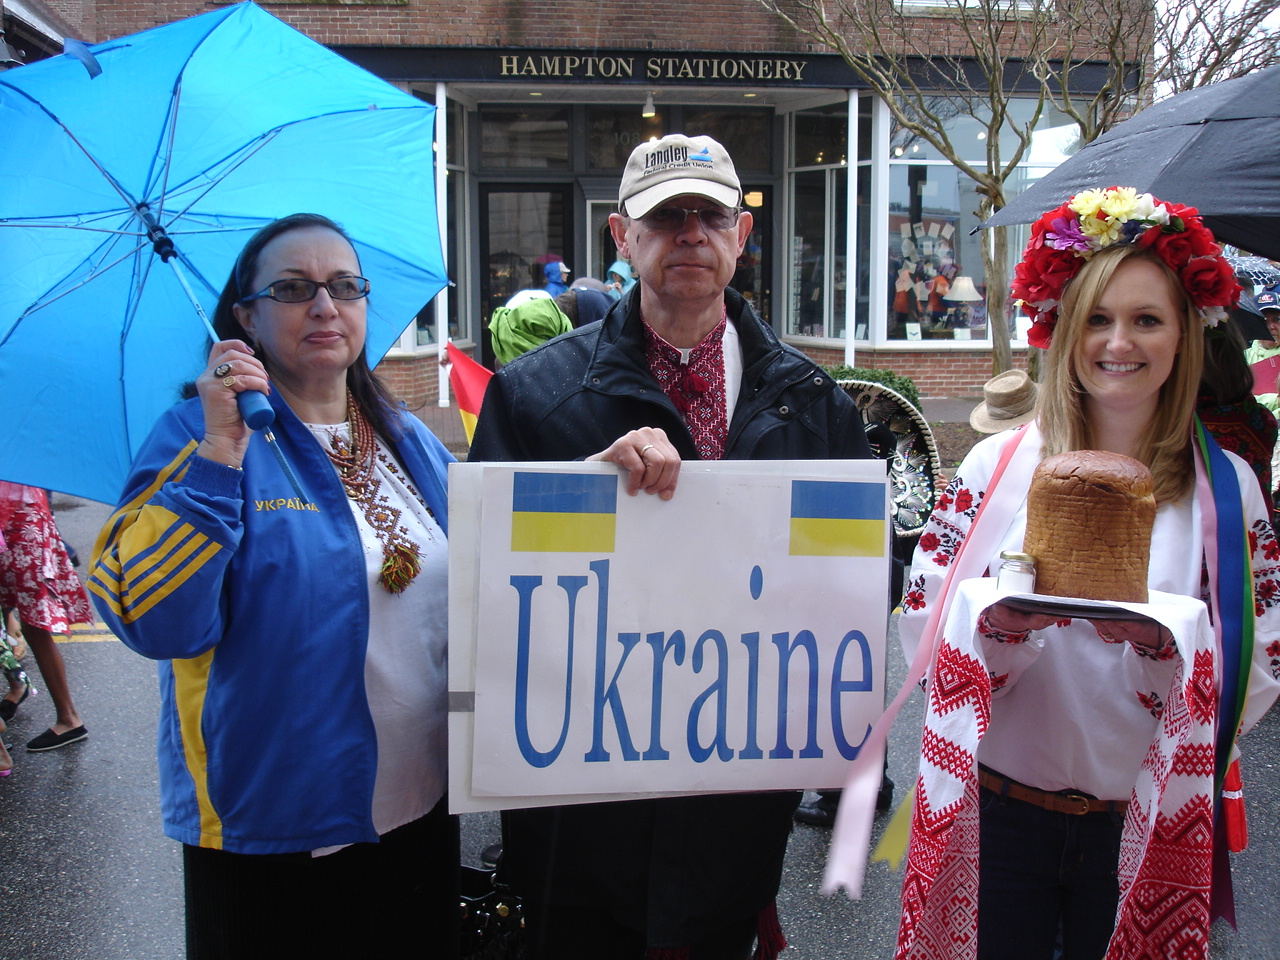 Despite the rainy weather, Ukraine was well represented at the festival.